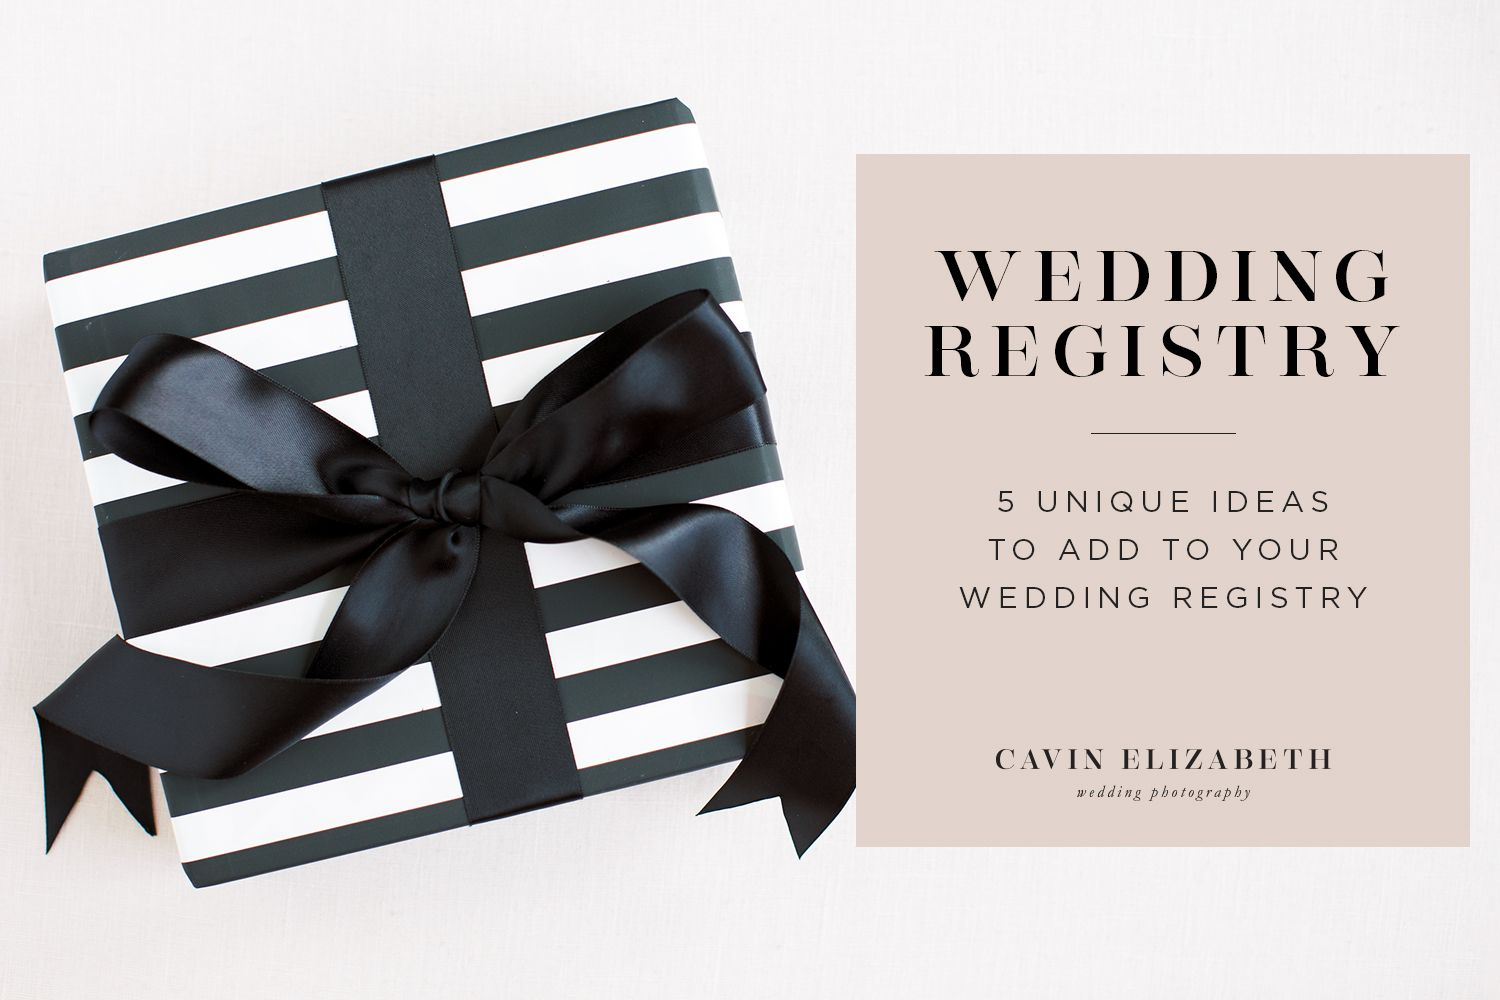 5 Great Wedding Registry Ideas For Brides And Grooms